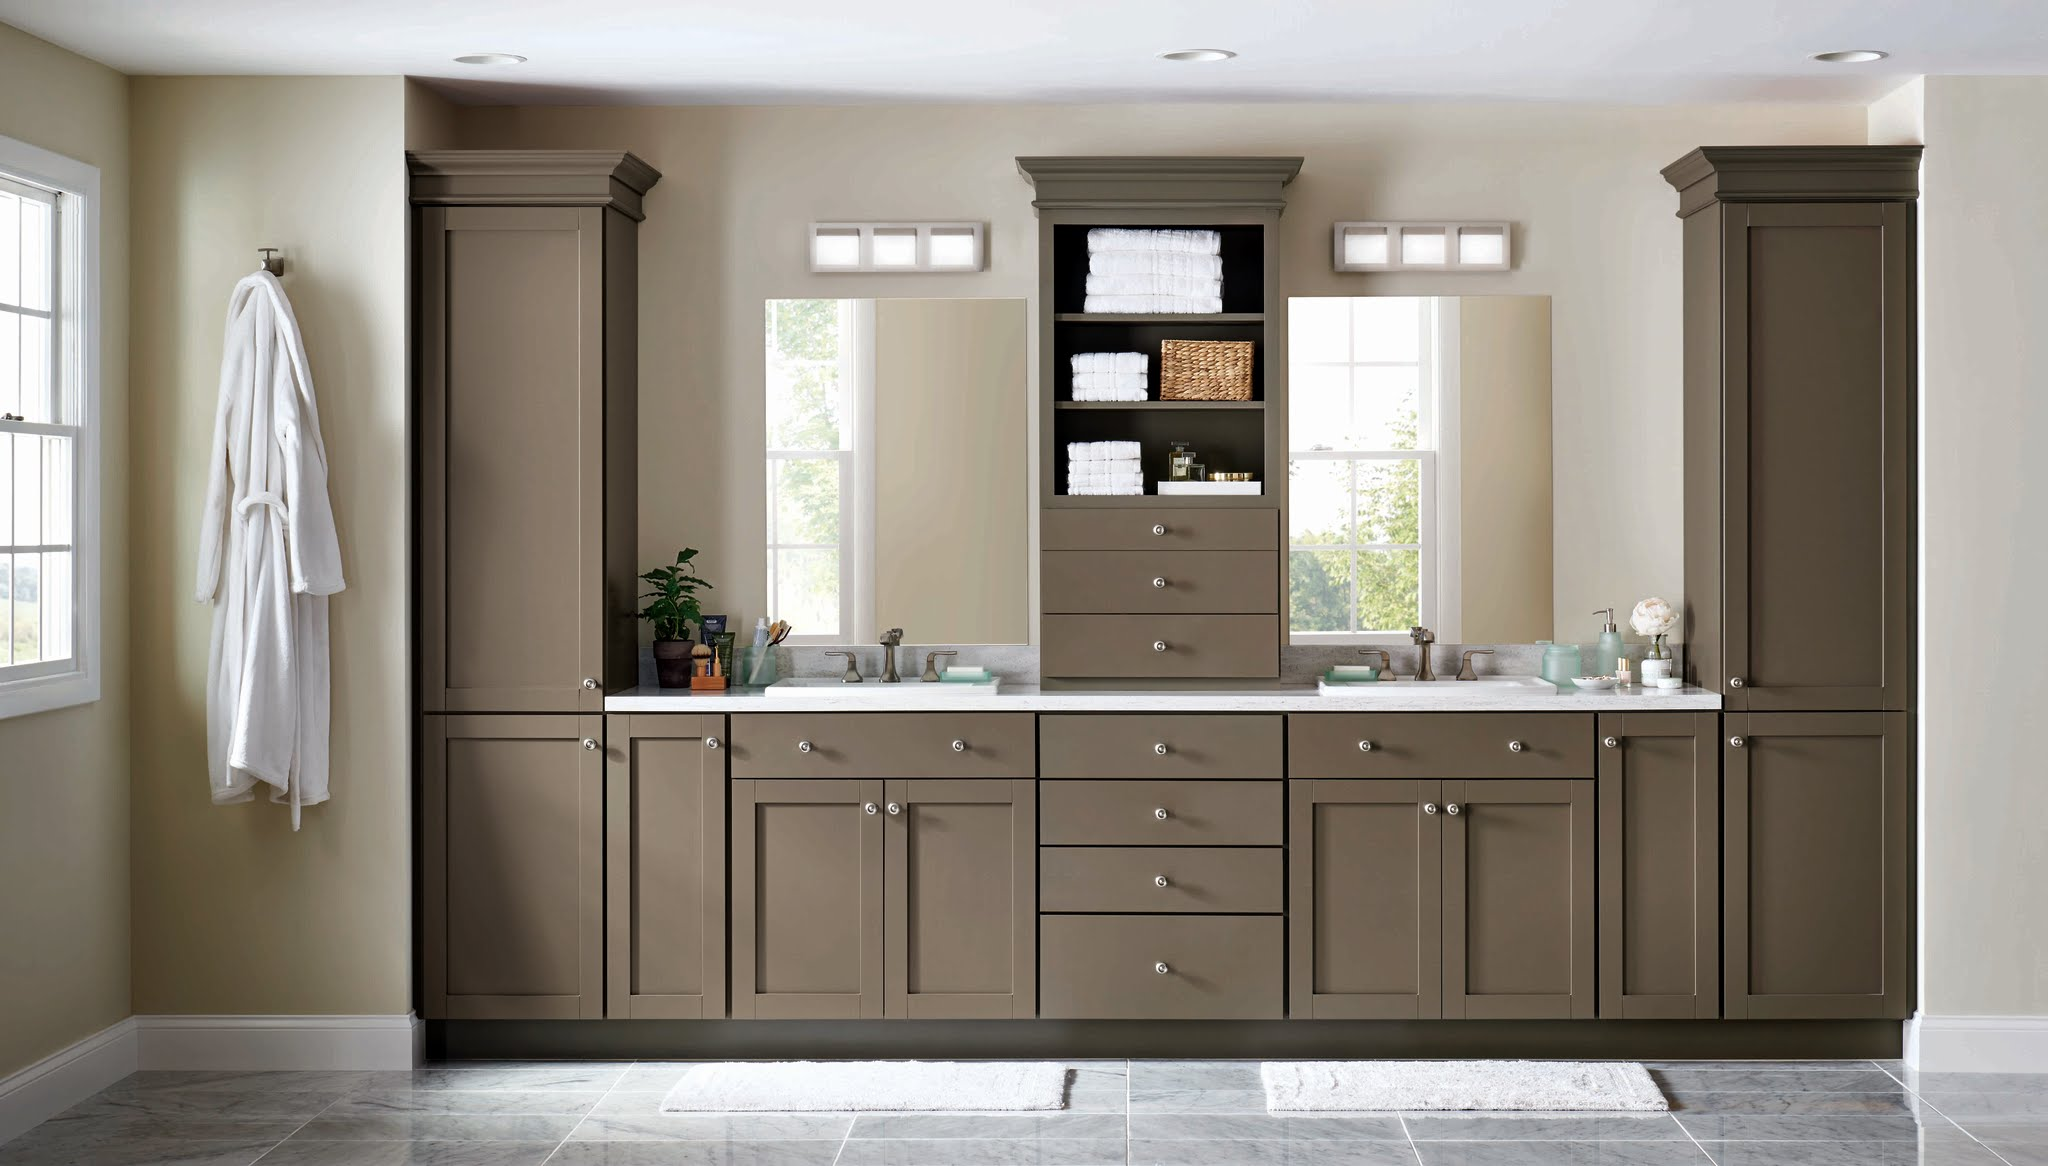 The Martha Stewart Blog : Blog Archive : Kitchen Week at The Home Depot